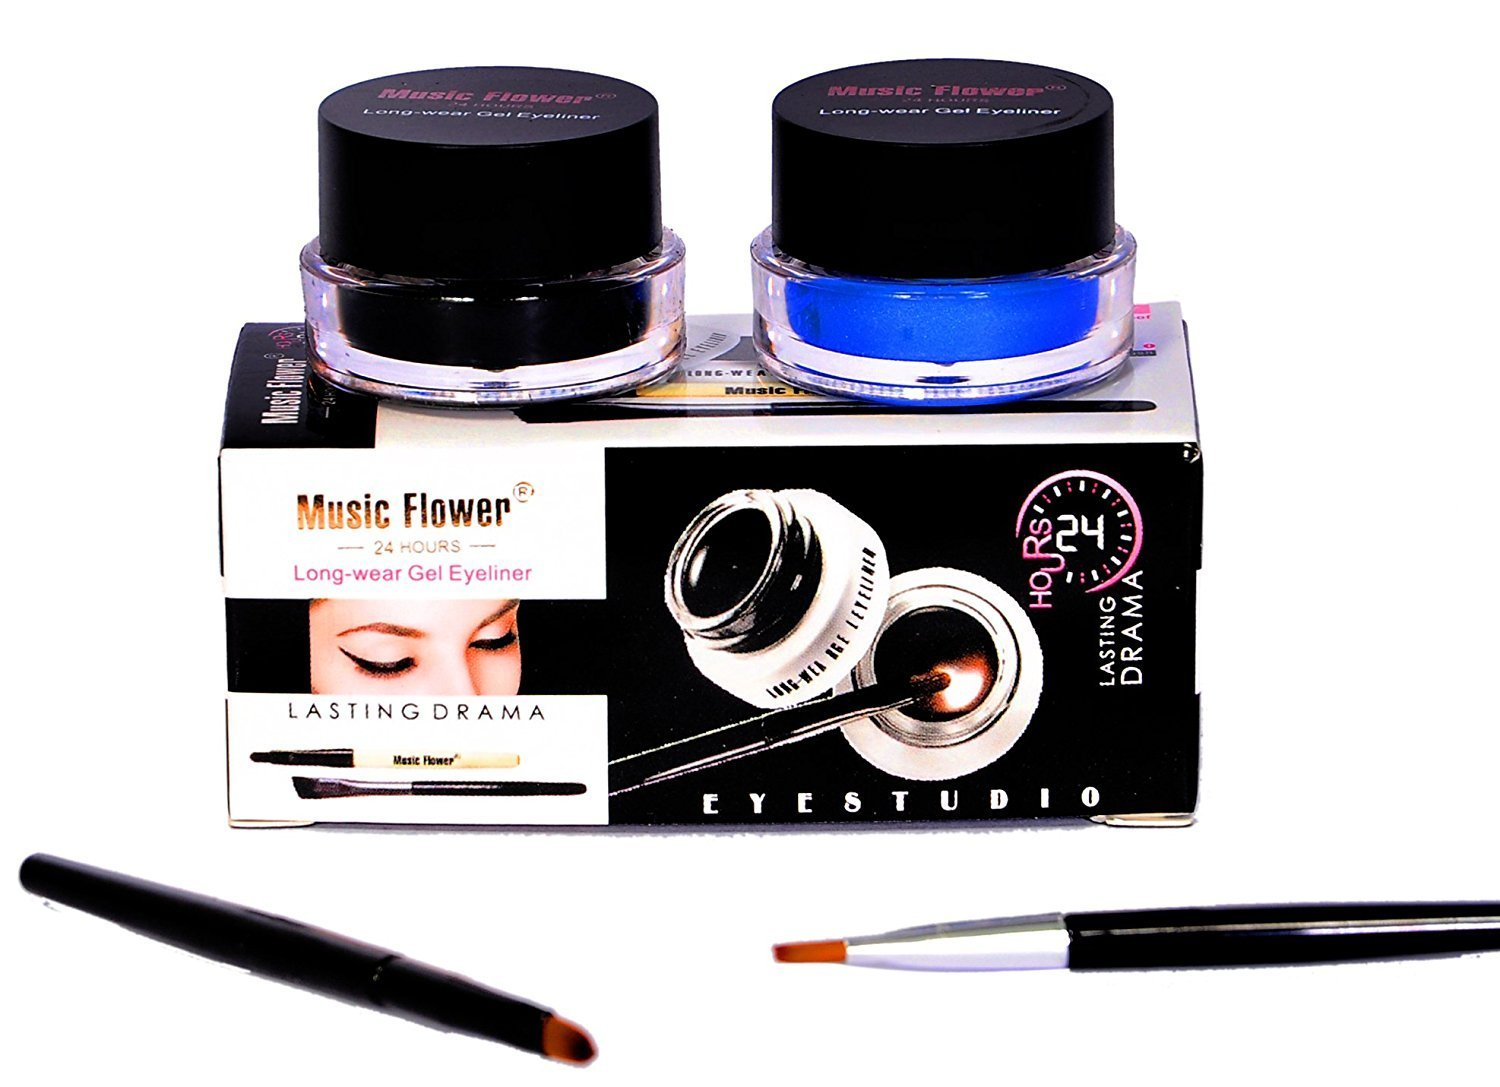 Music Flower Smudge Proof and Waterproof Long Wear Gel Eyeliner with 2 Expert Eyeliner-Brushes (Black and Blue) product image